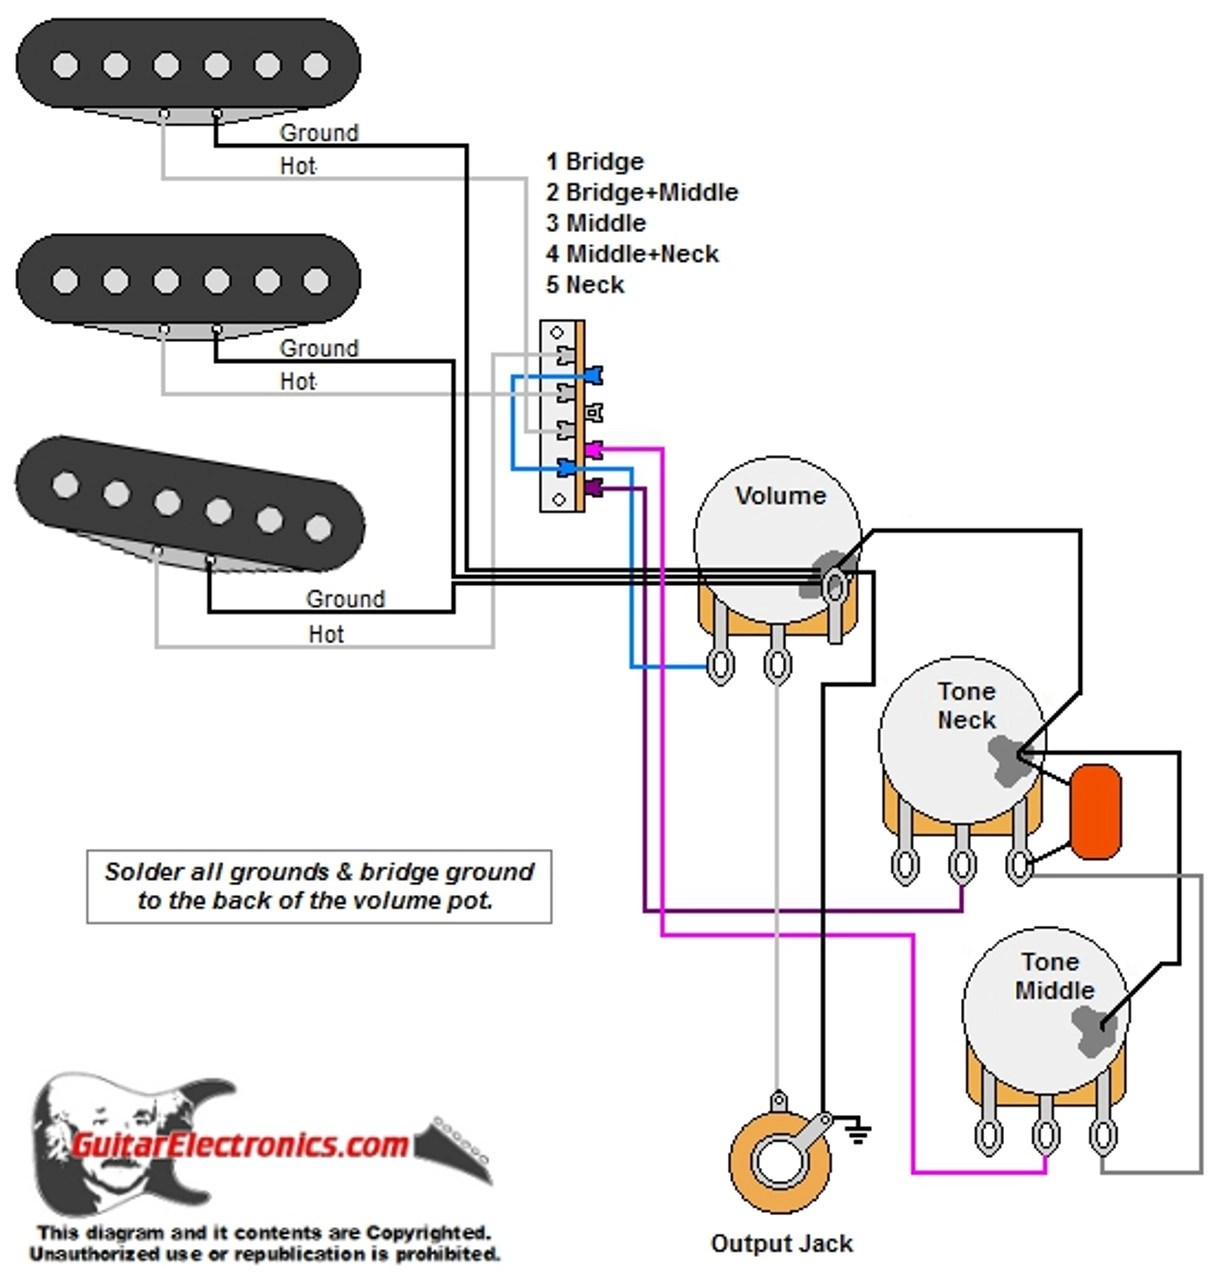 small resolution of strat style guitar wiring diagramwdusss5l1201 80483 1481740458 jpg c u003d2